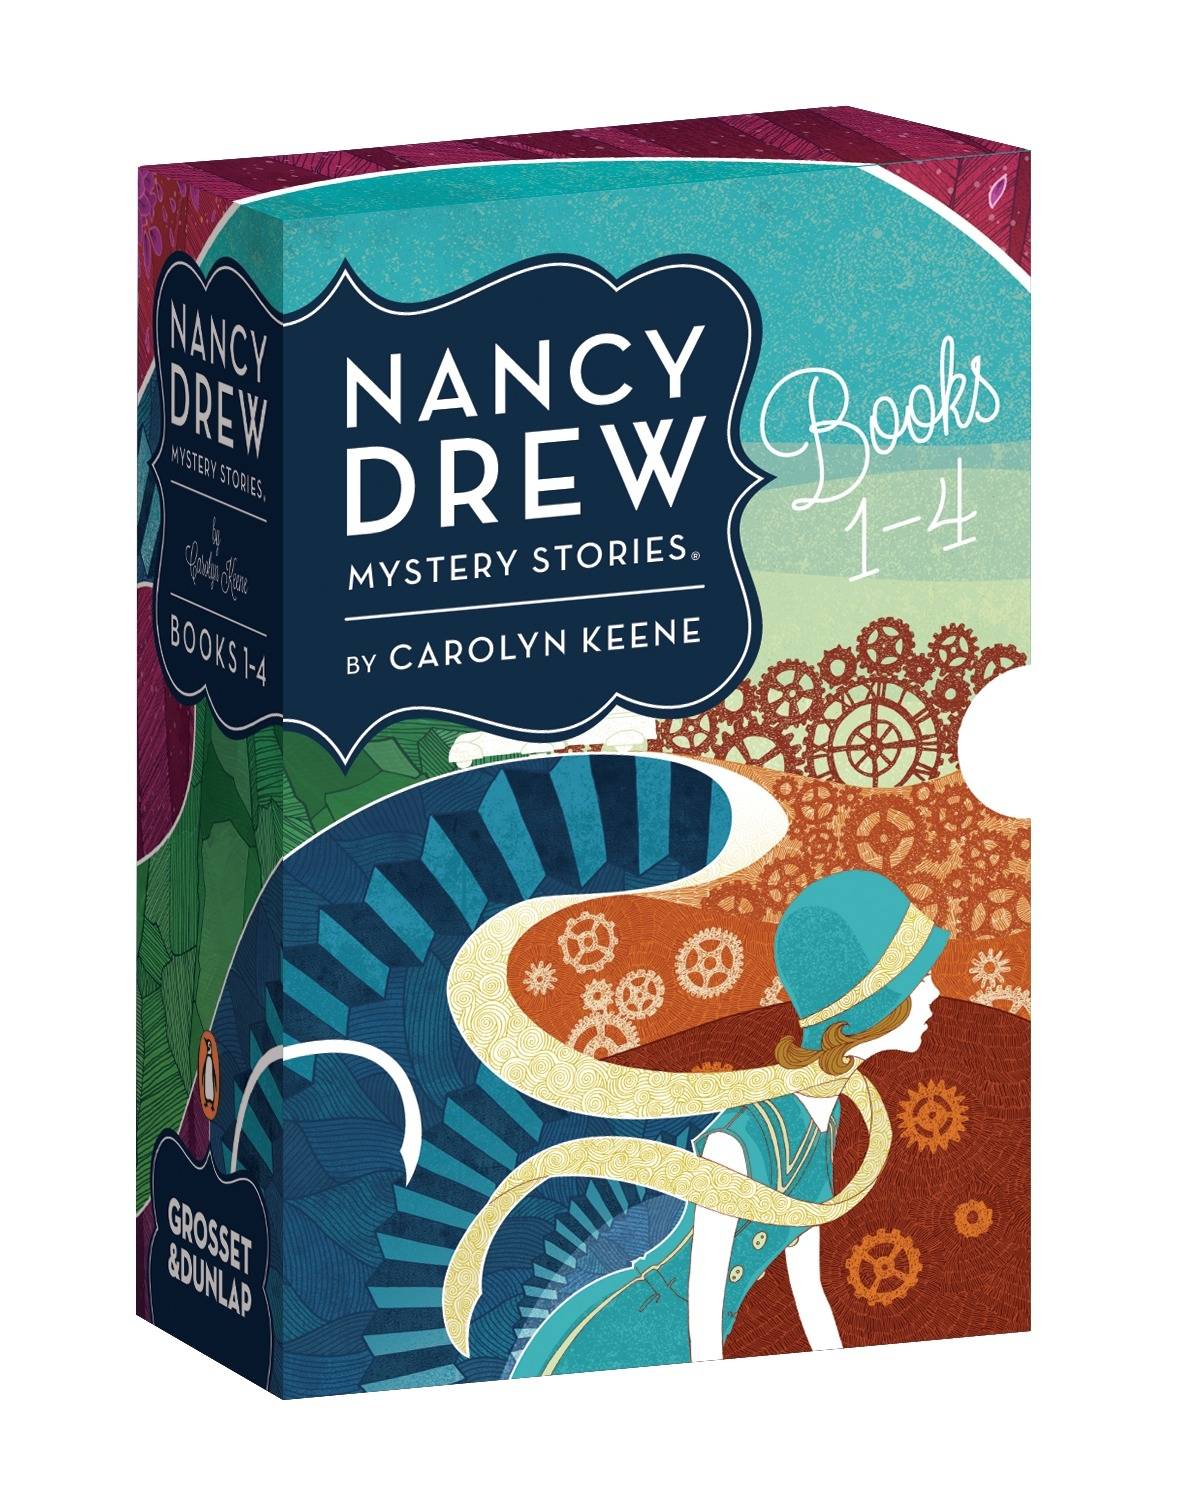 Picture of Nancy Drew Mystery Stories Books 1-4 (Boxed Set)